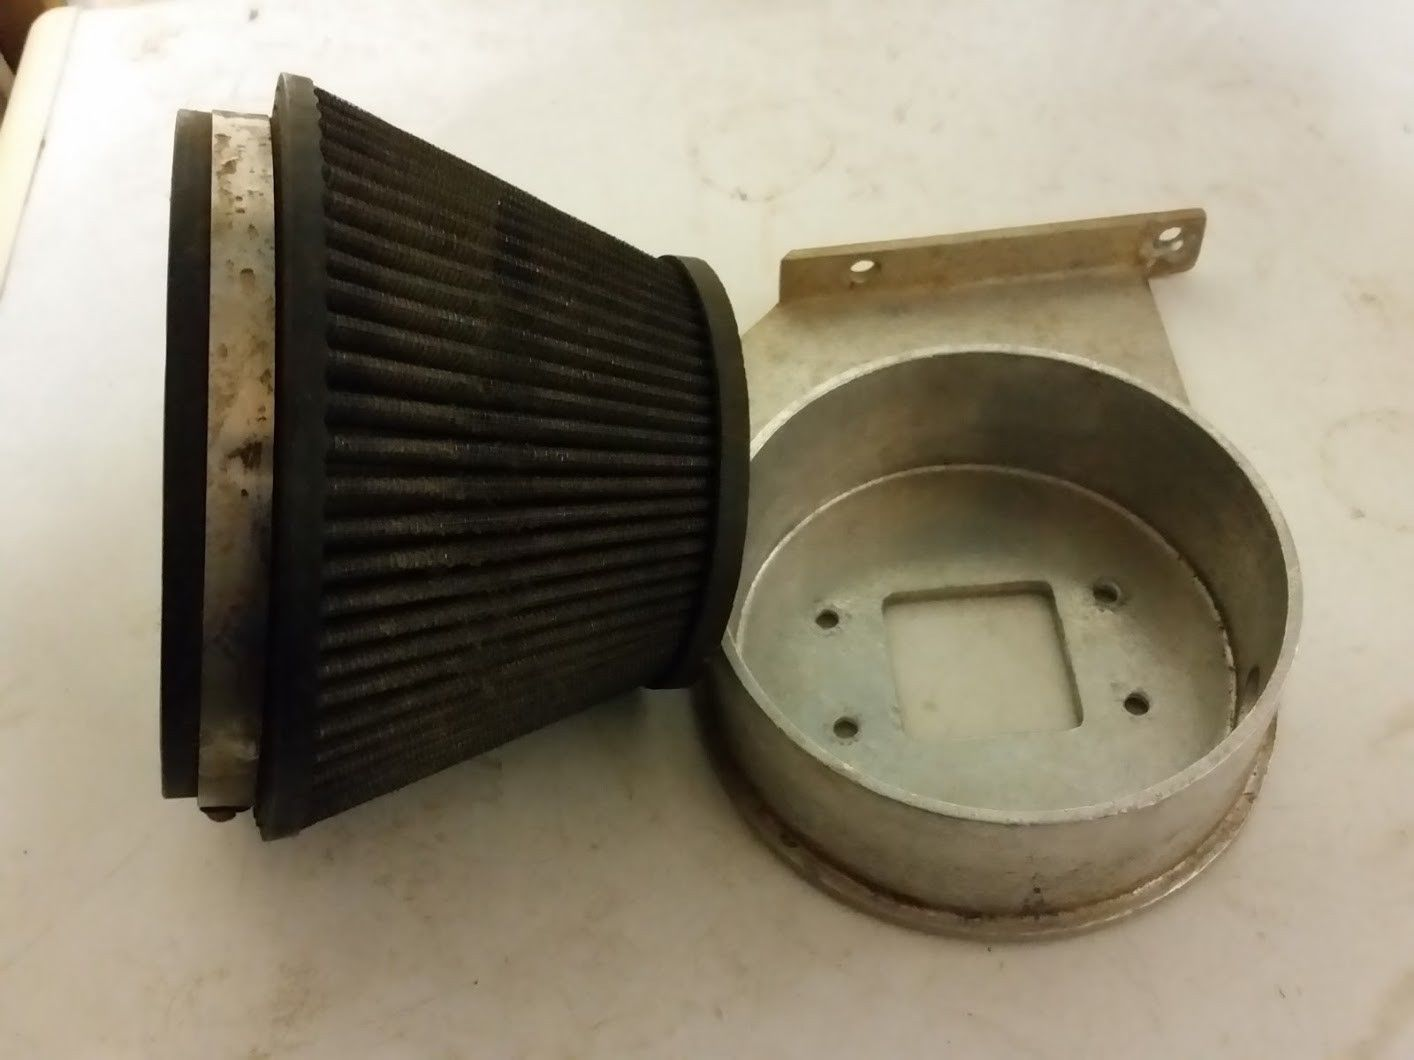 DOWNEY AIR FILTER CONVERSION FOR TOYOTA 22RE Does not apply